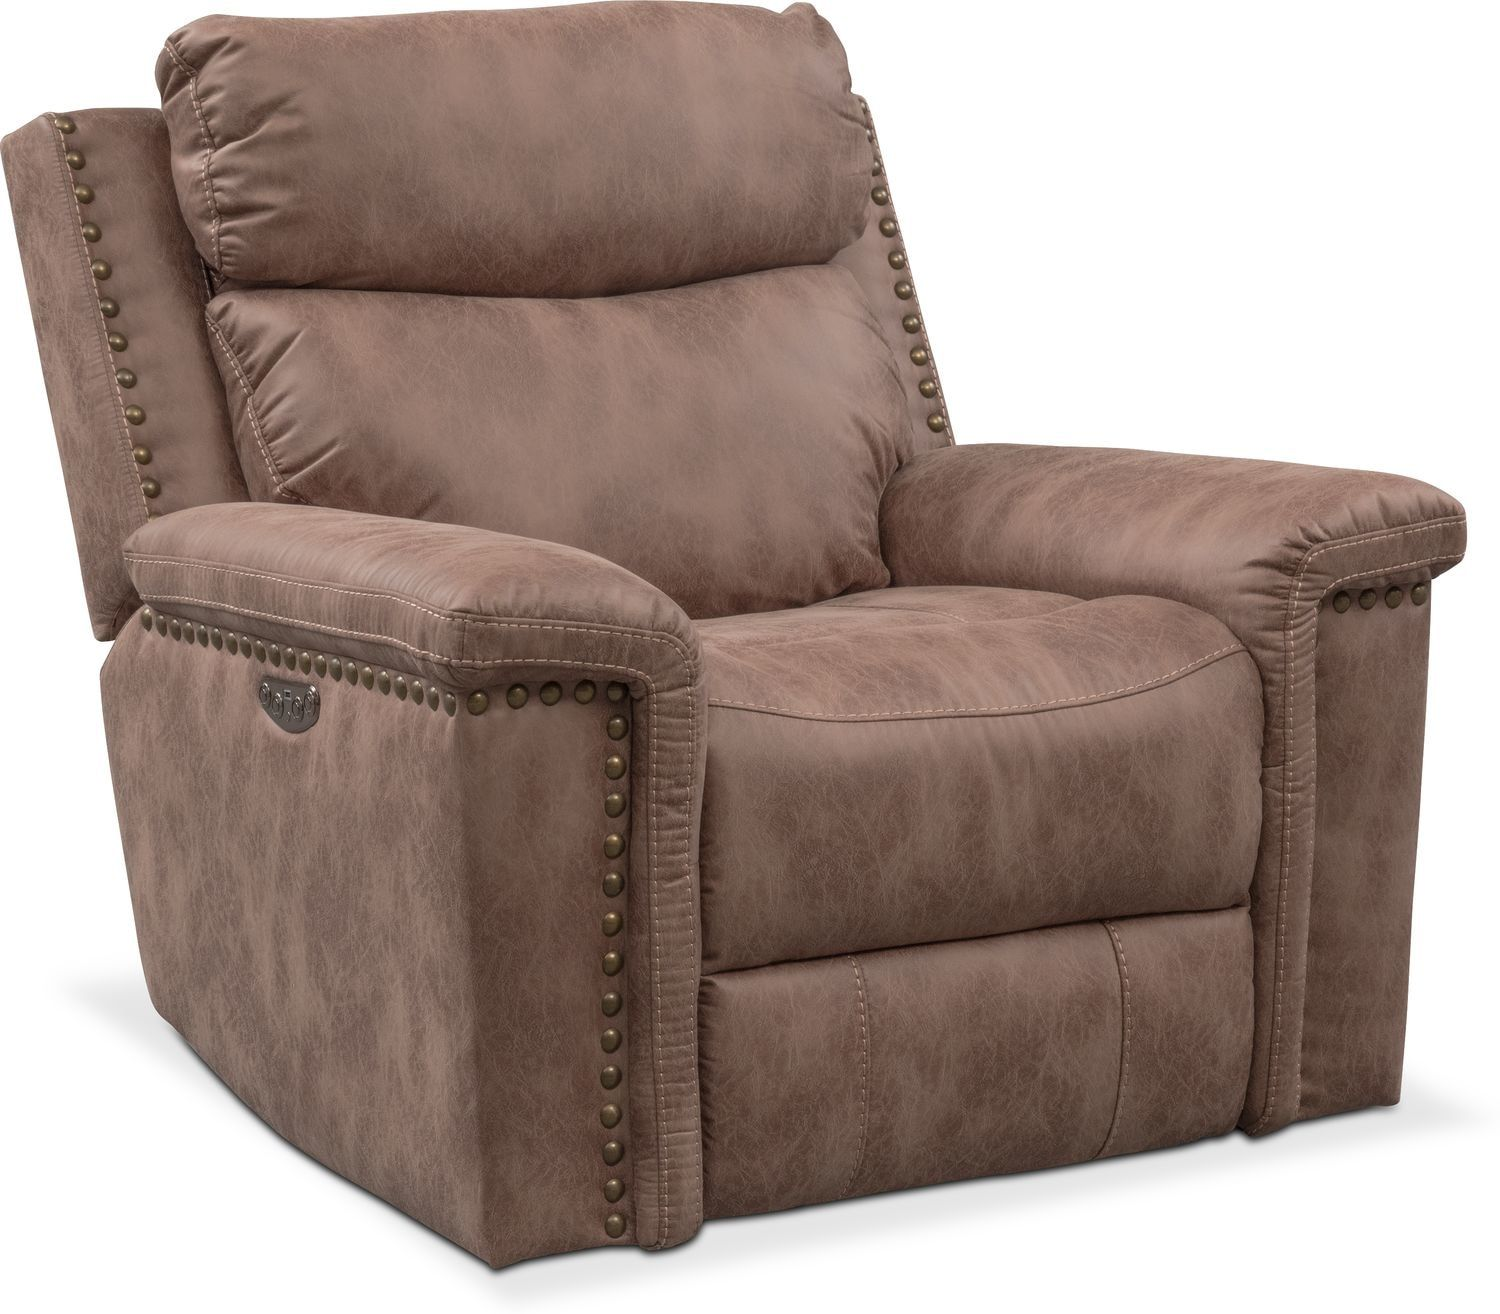 Montana Dual Power Recliner In 2020 Power Recliners Recliner Furniture